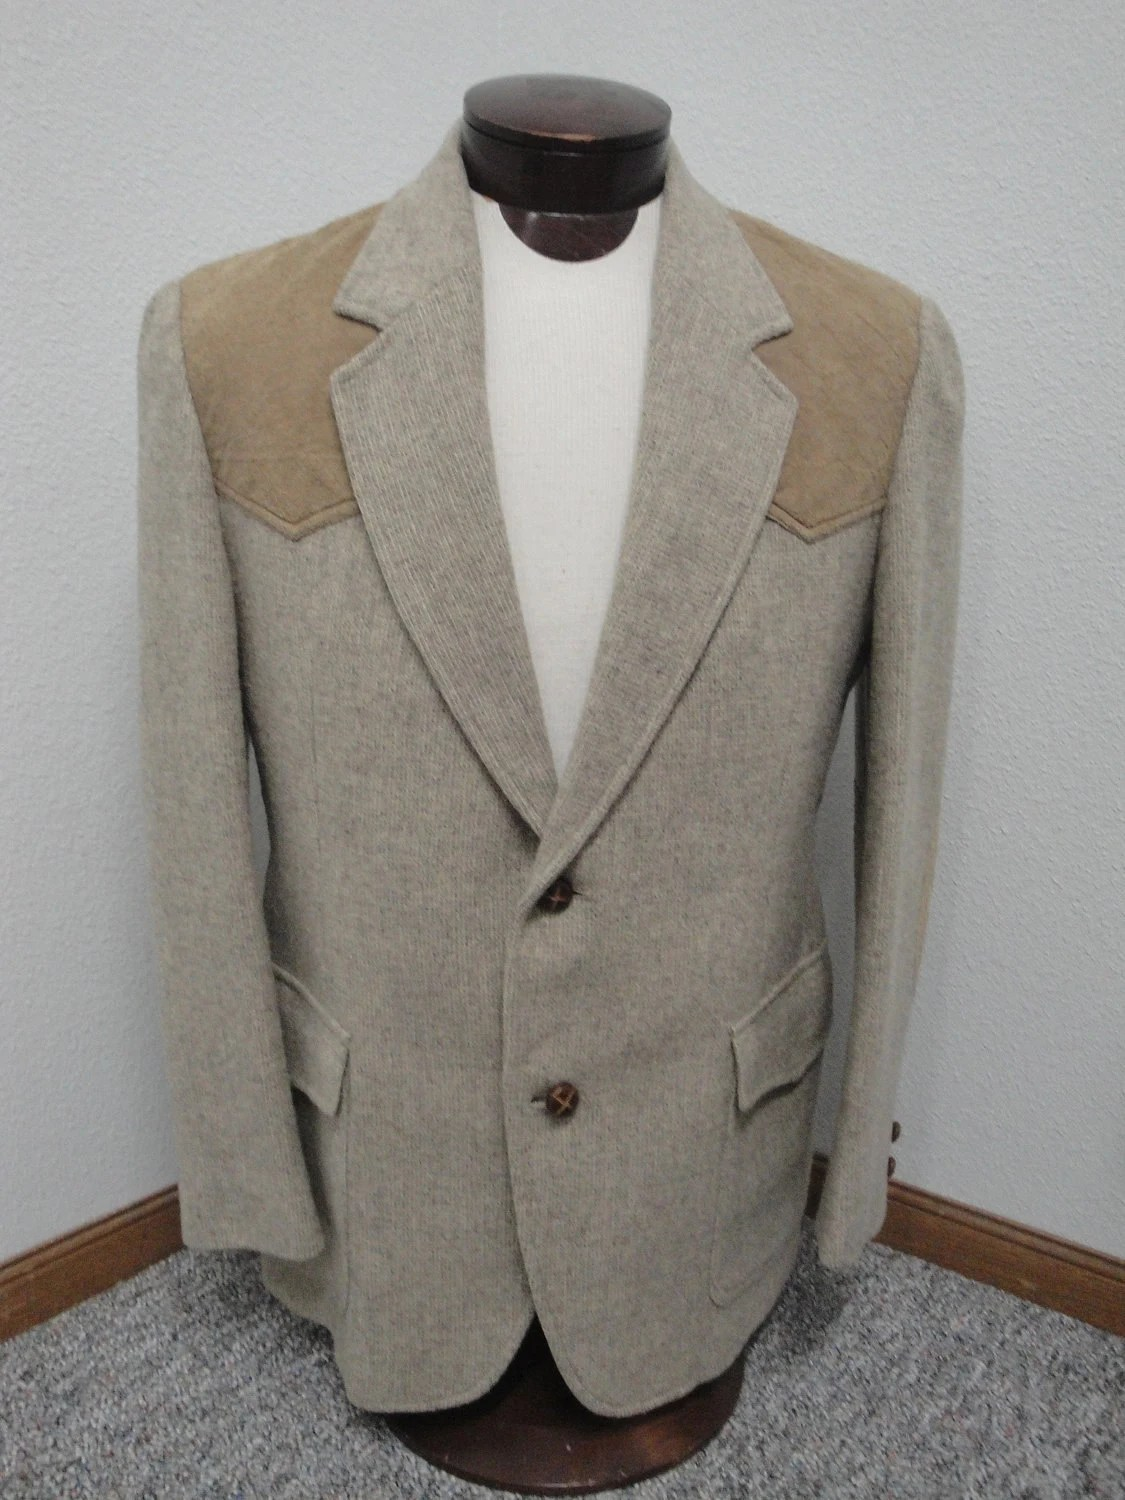 Mens Pendleton Sports Coat with Elbow Patches and Western Cut